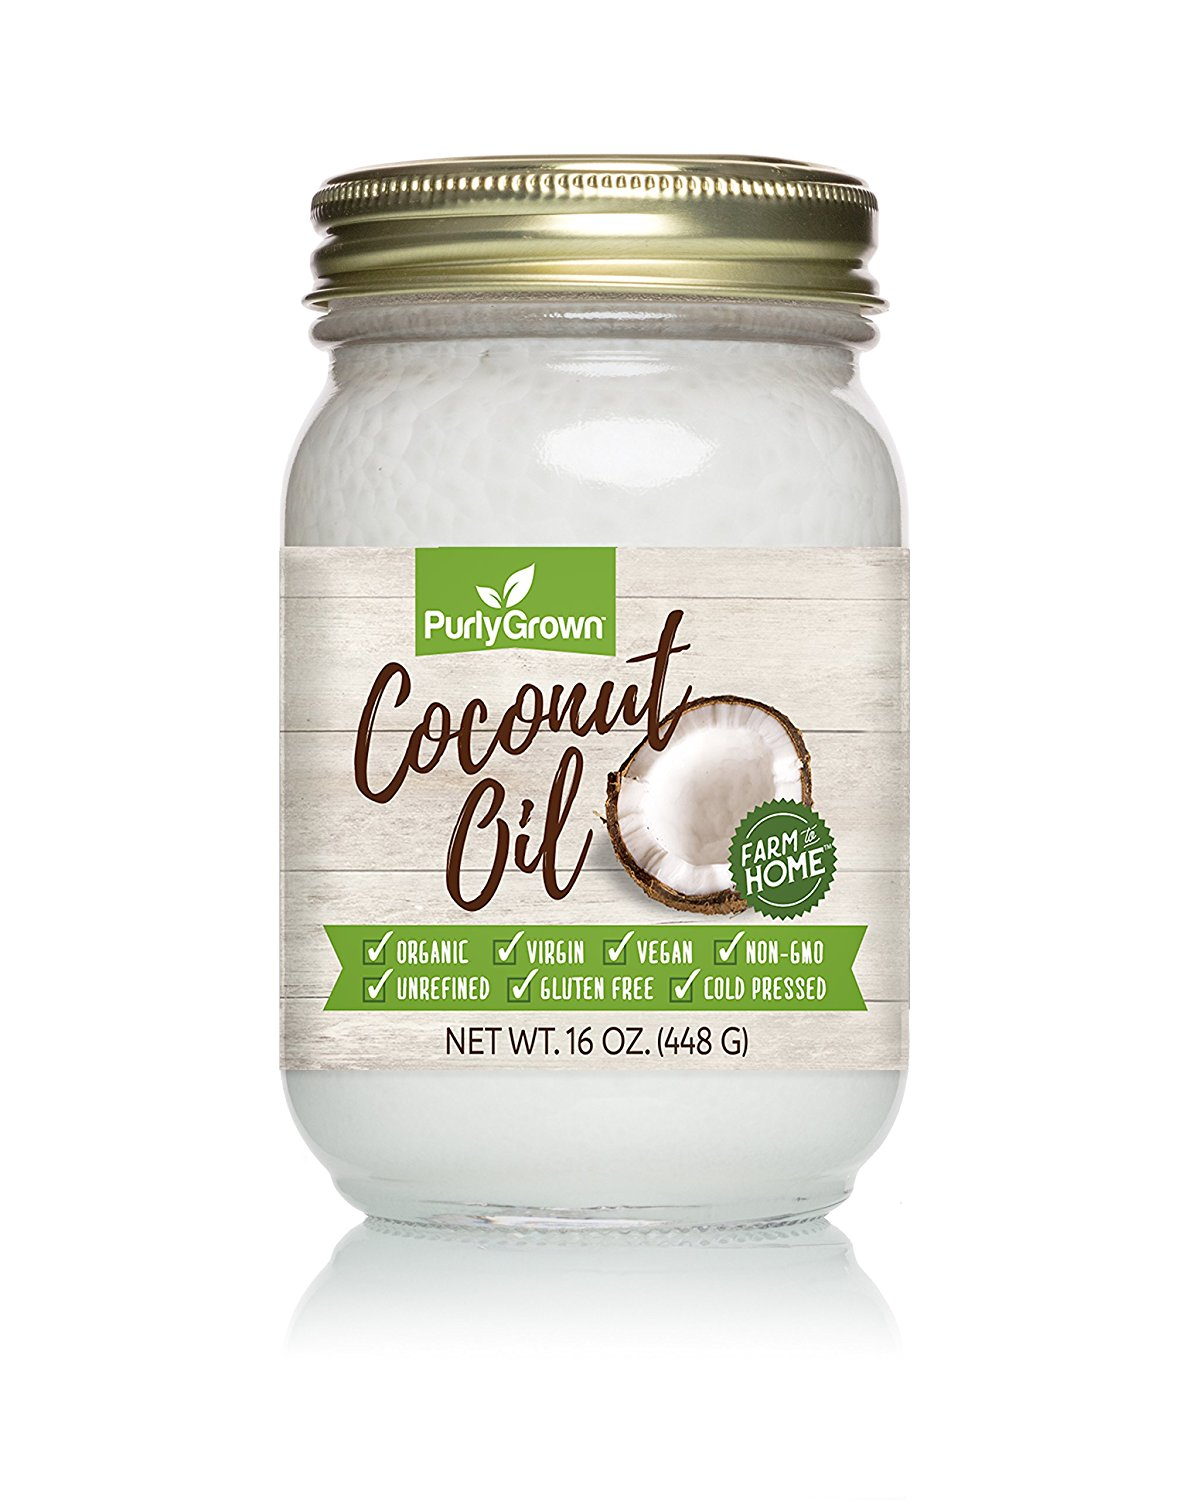 Purly Grown Organic Virgin Coconut Oil